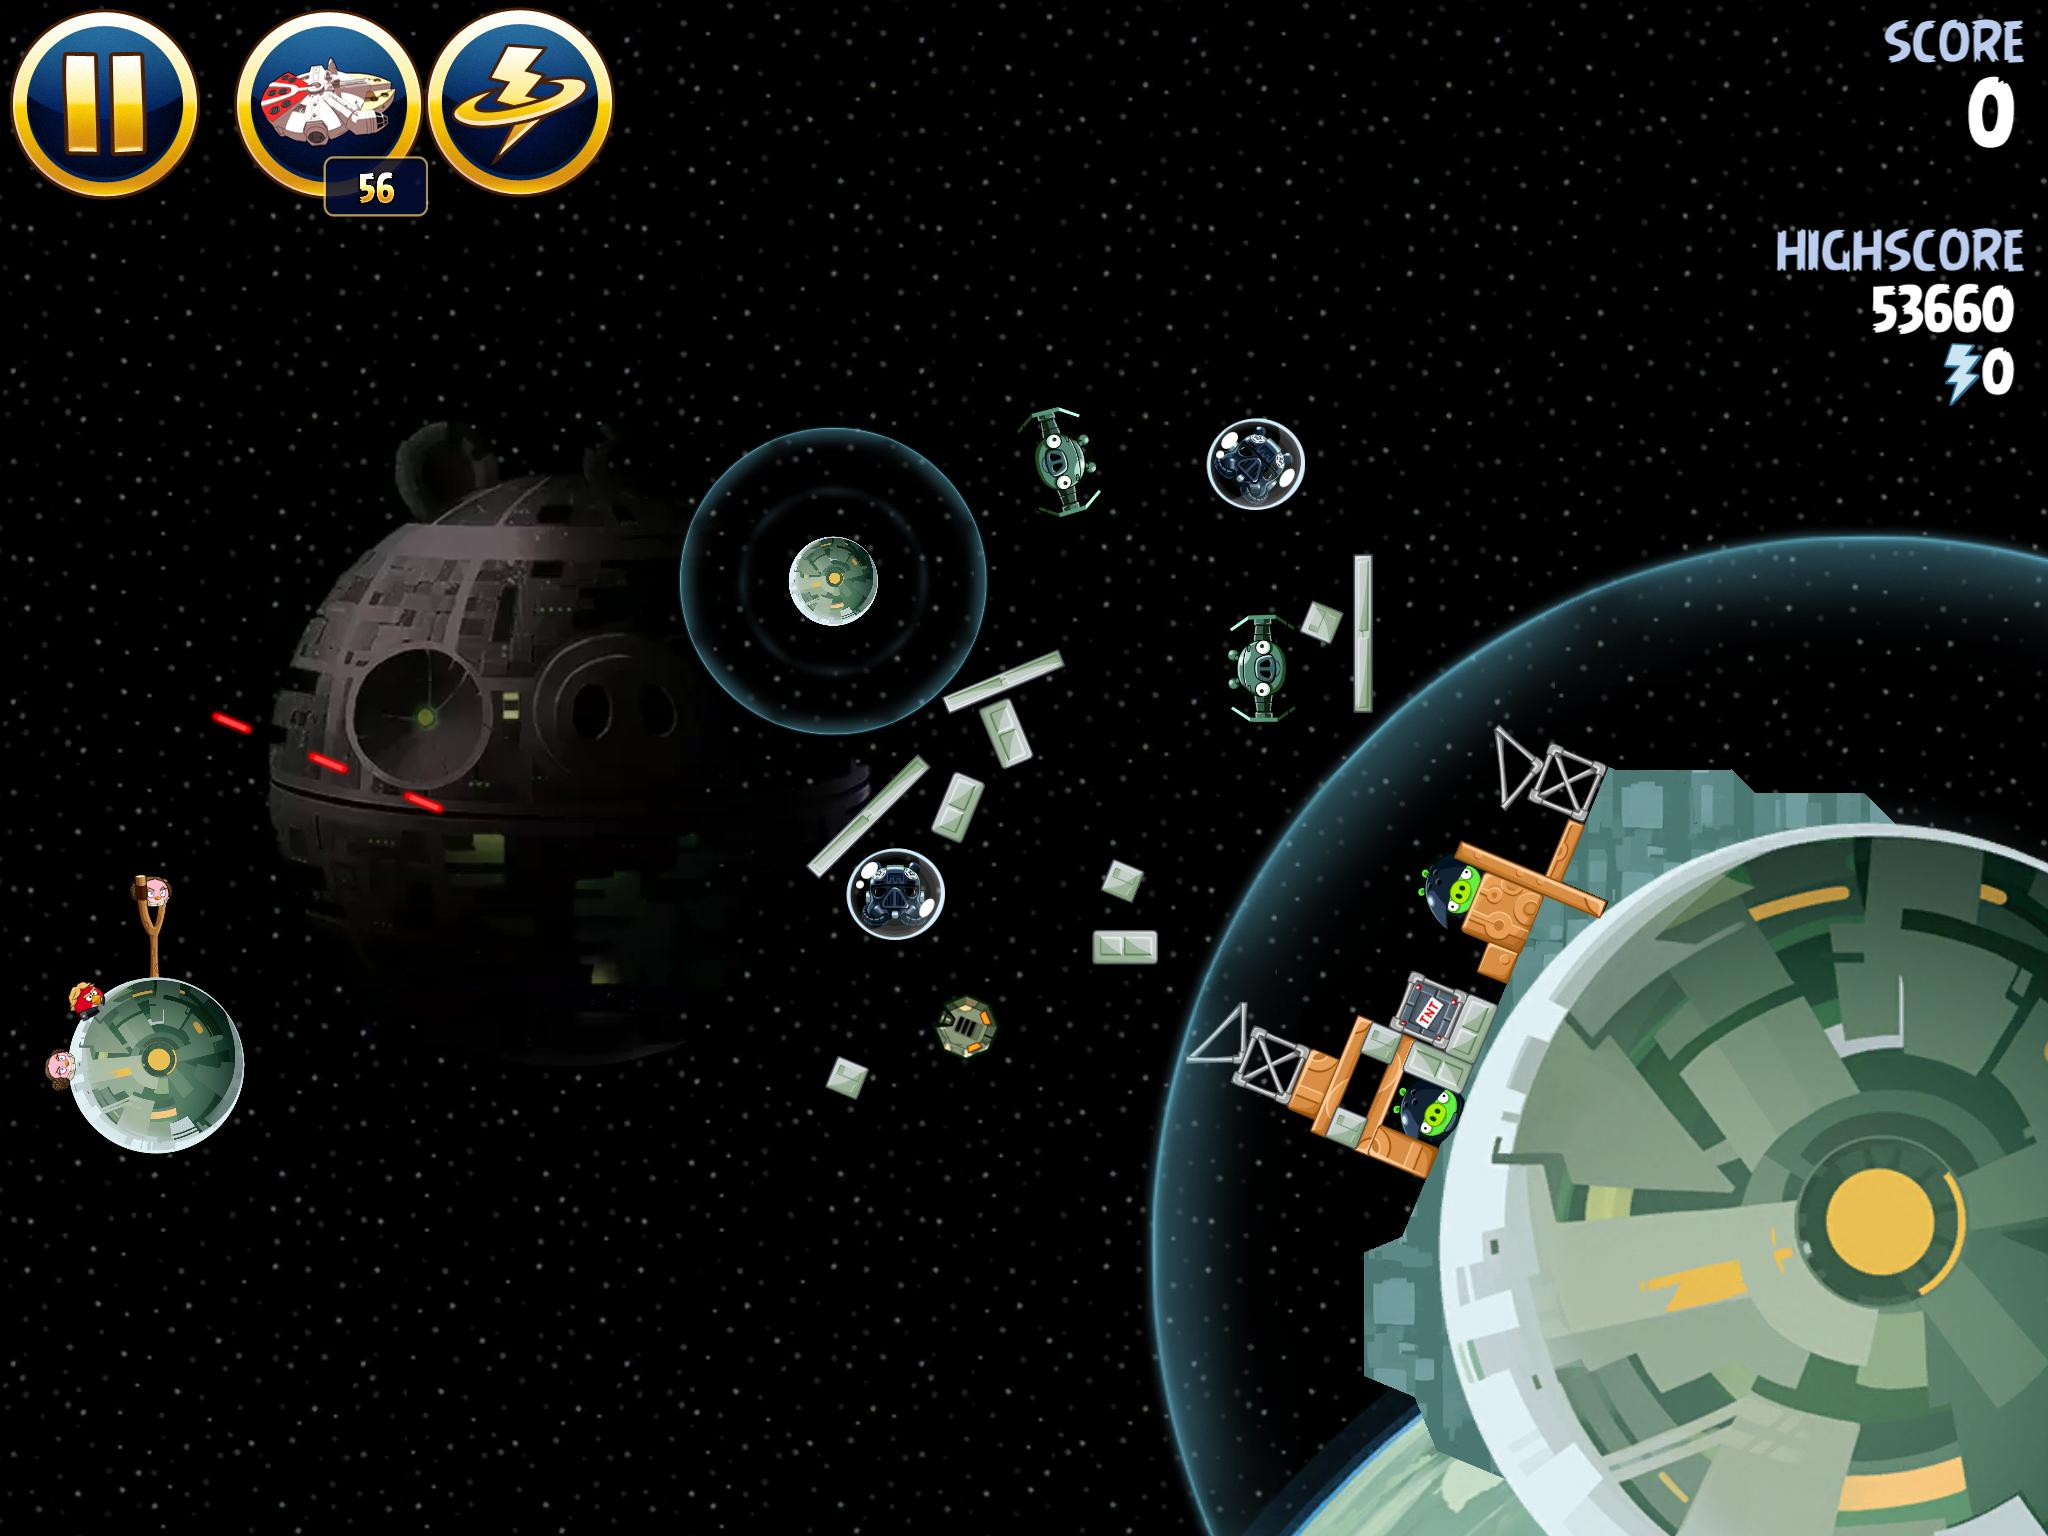 Death Star 2 6-4 (Angry Birds Star Wars)